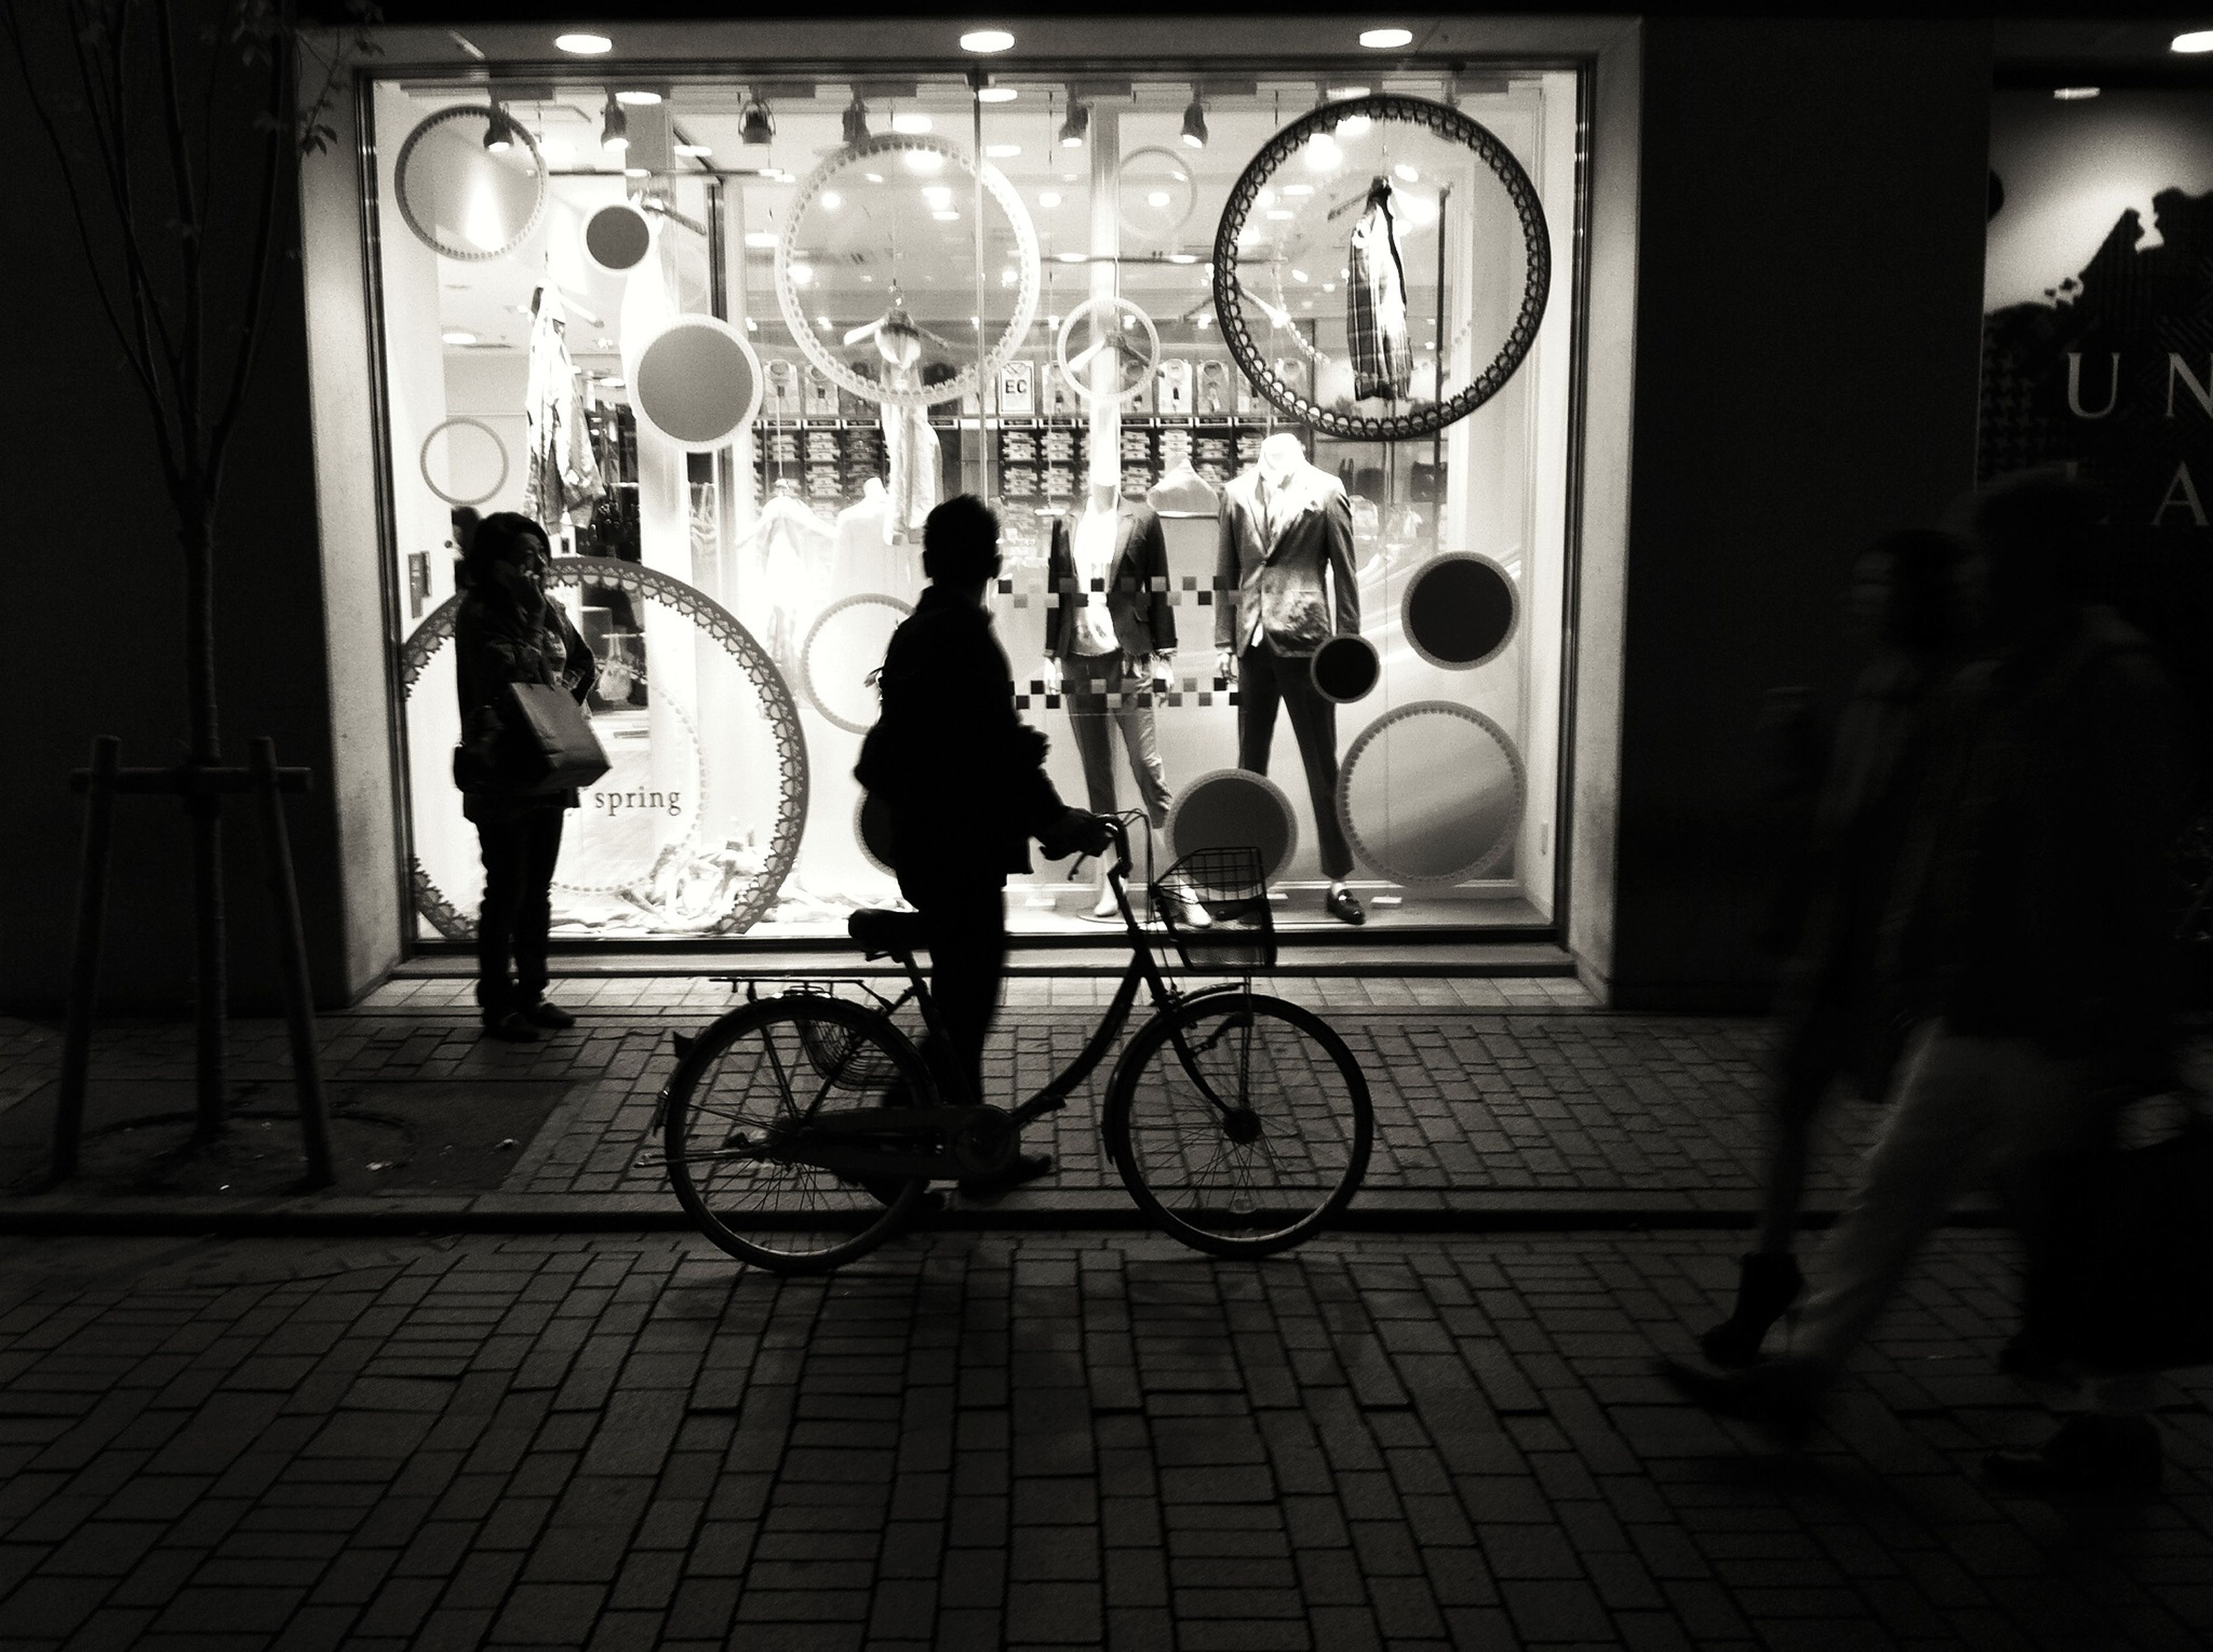 men, bicycle, lifestyles, full length, leisure activity, walking, person, street, indoors, built structure, city life, transportation, architecture, city, illuminated, medium group of people, rear view, night